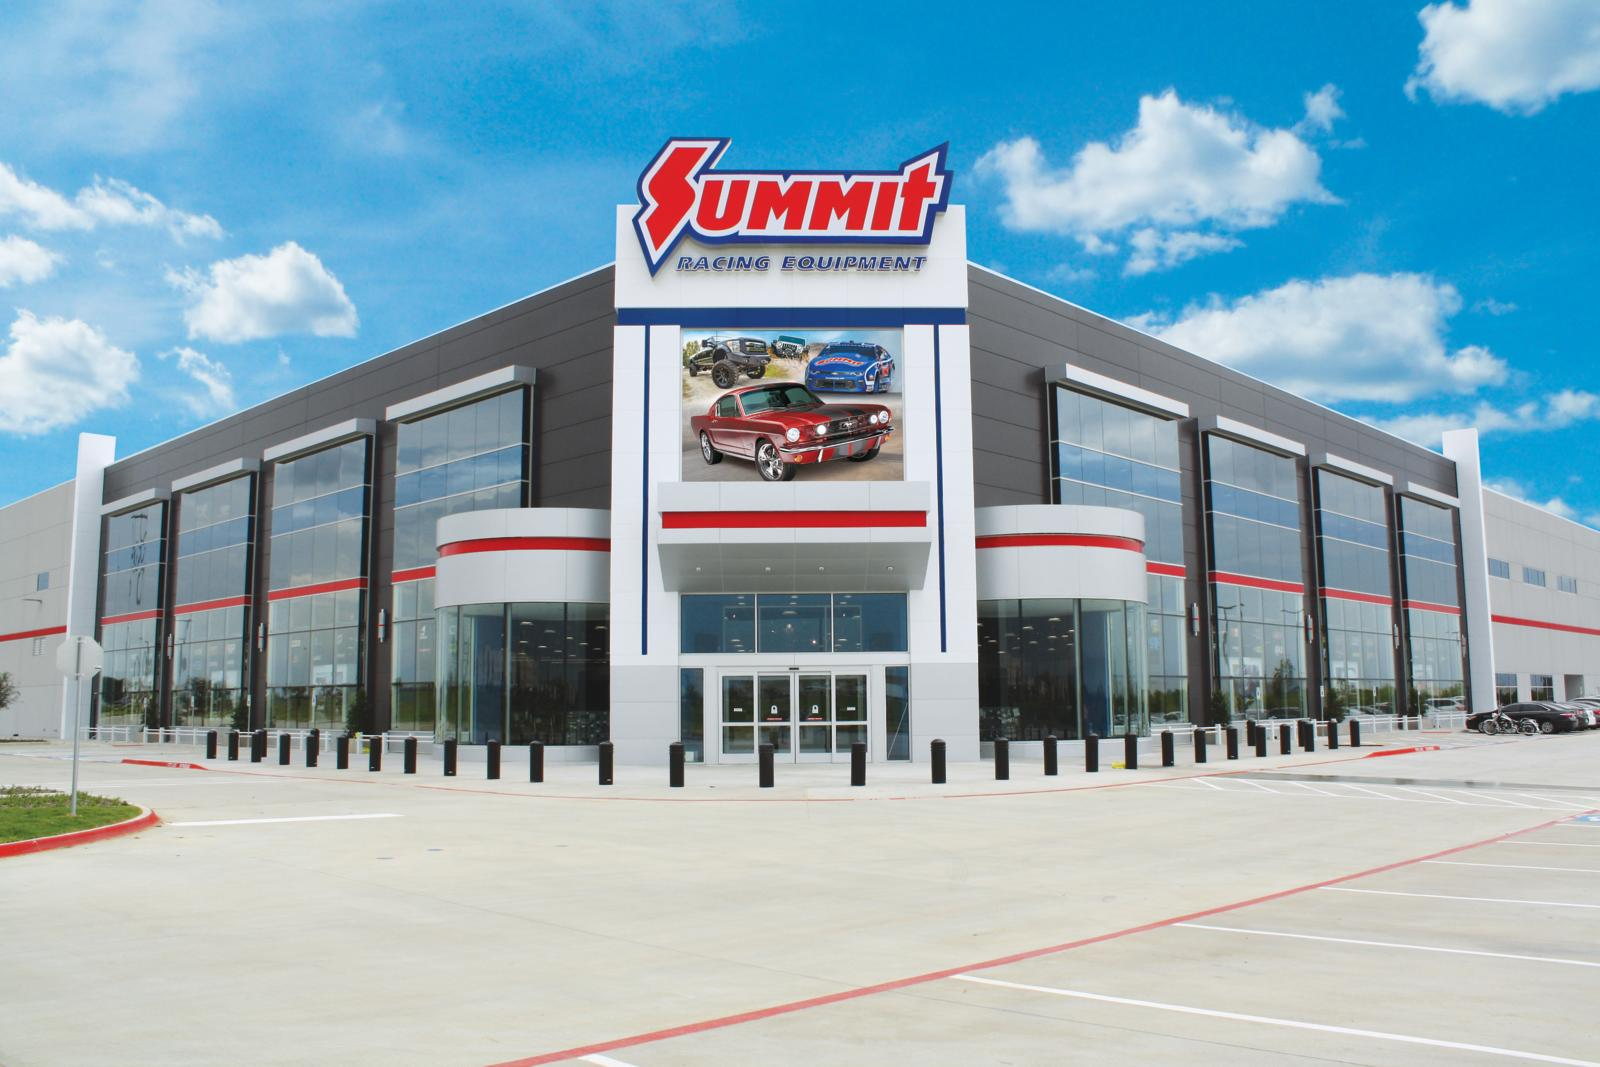 20+ items · Find 2 listings related to Summit Auto Parts in Mcdonough on deviatemonth.ml See reviews, photos, directions, phone numbers and more for Summit Auto Parts locations in Mcdonough, GA. Start your search by typing in the business name below.